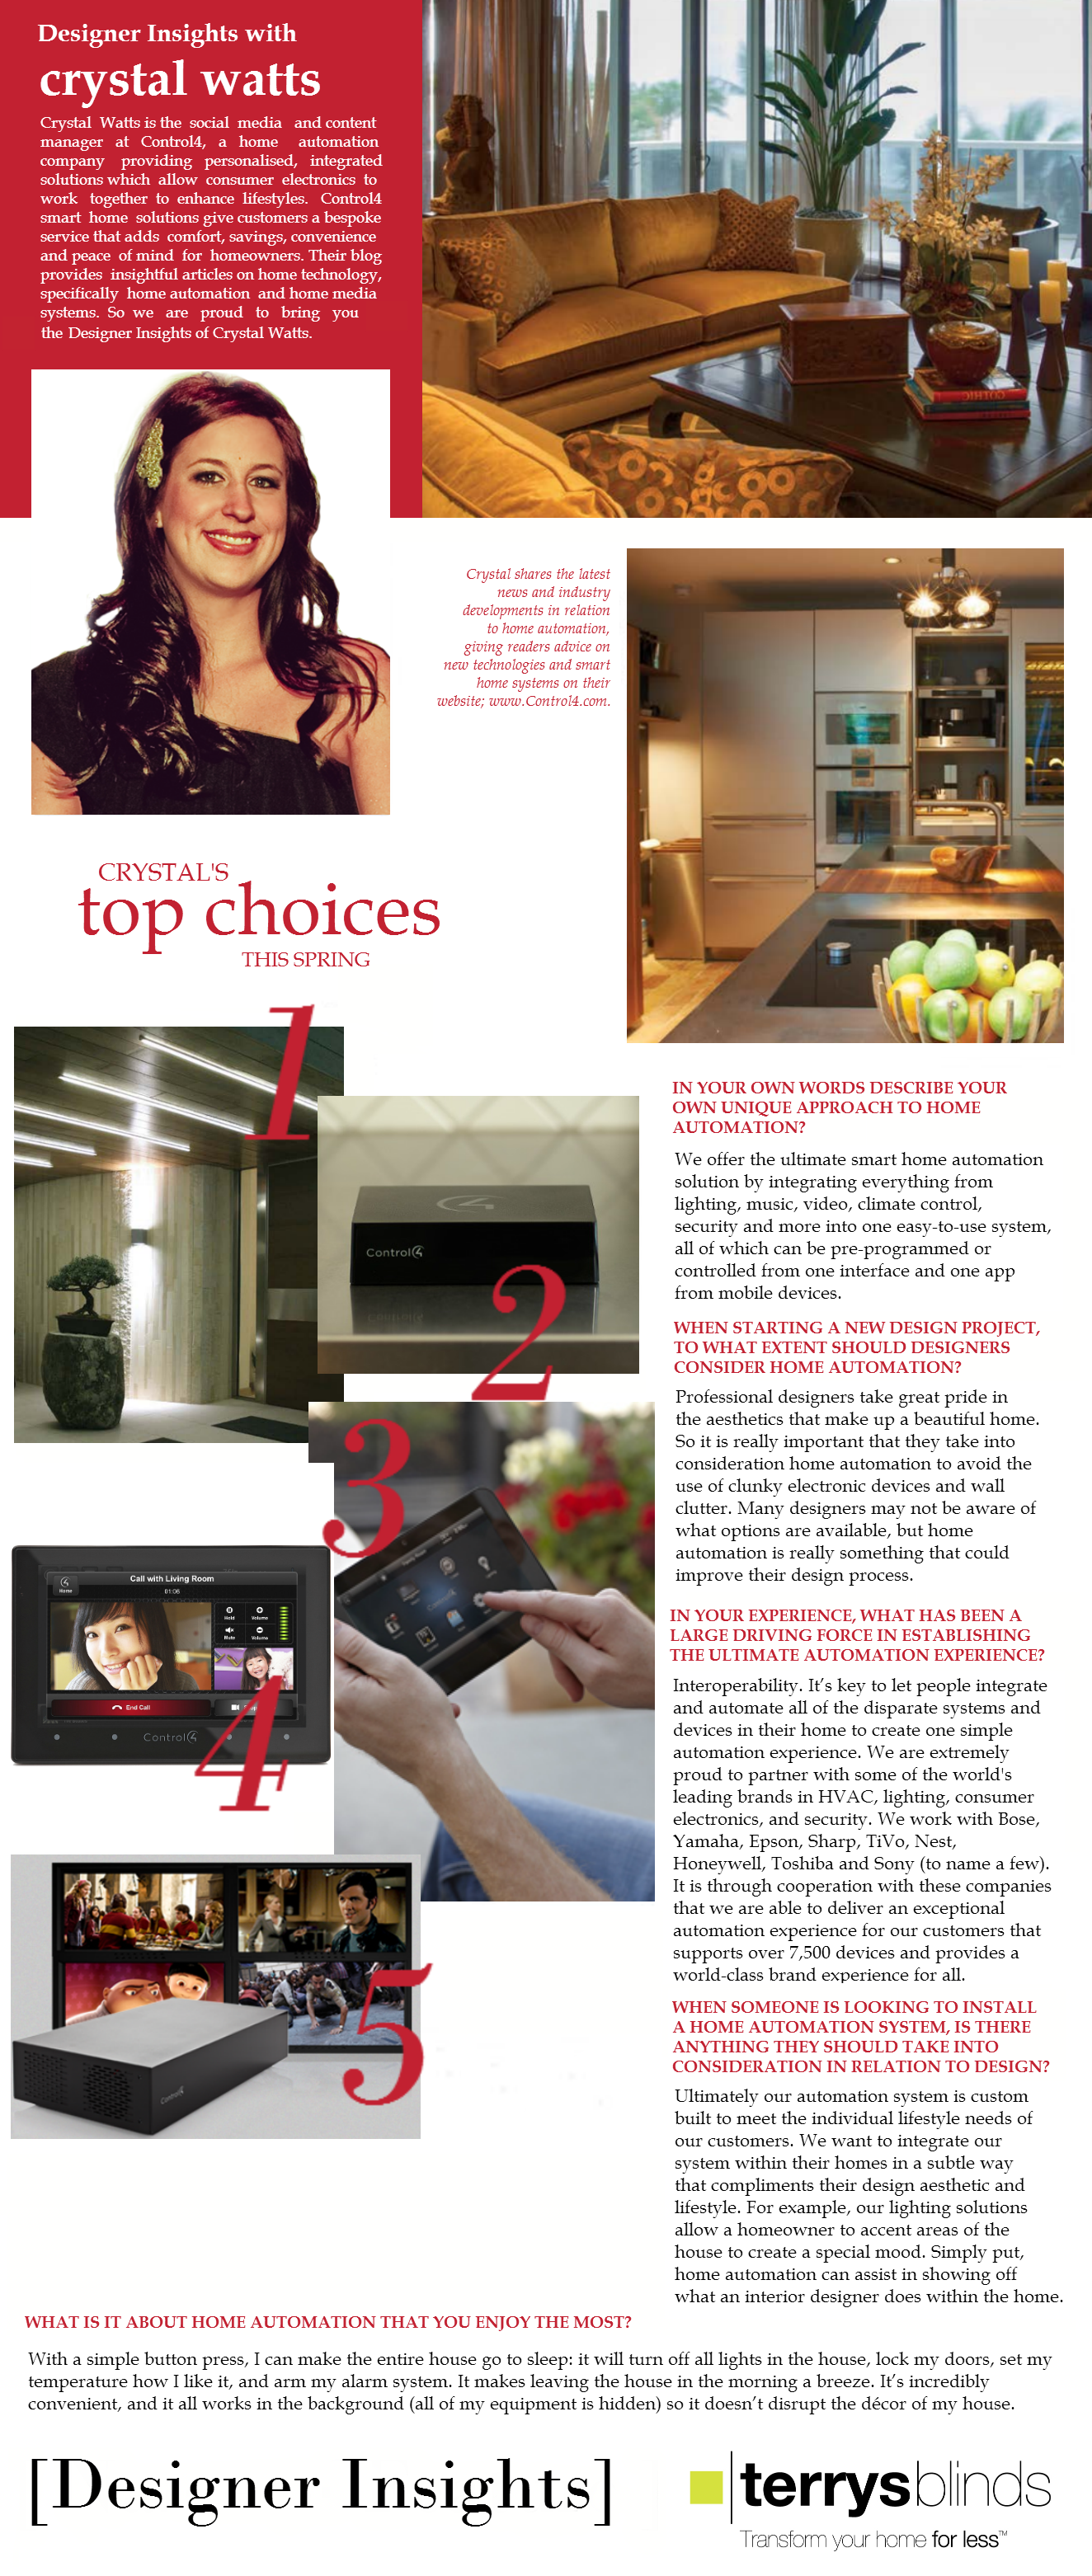 Designer Insights How Home Automation Can Benefit The Interior